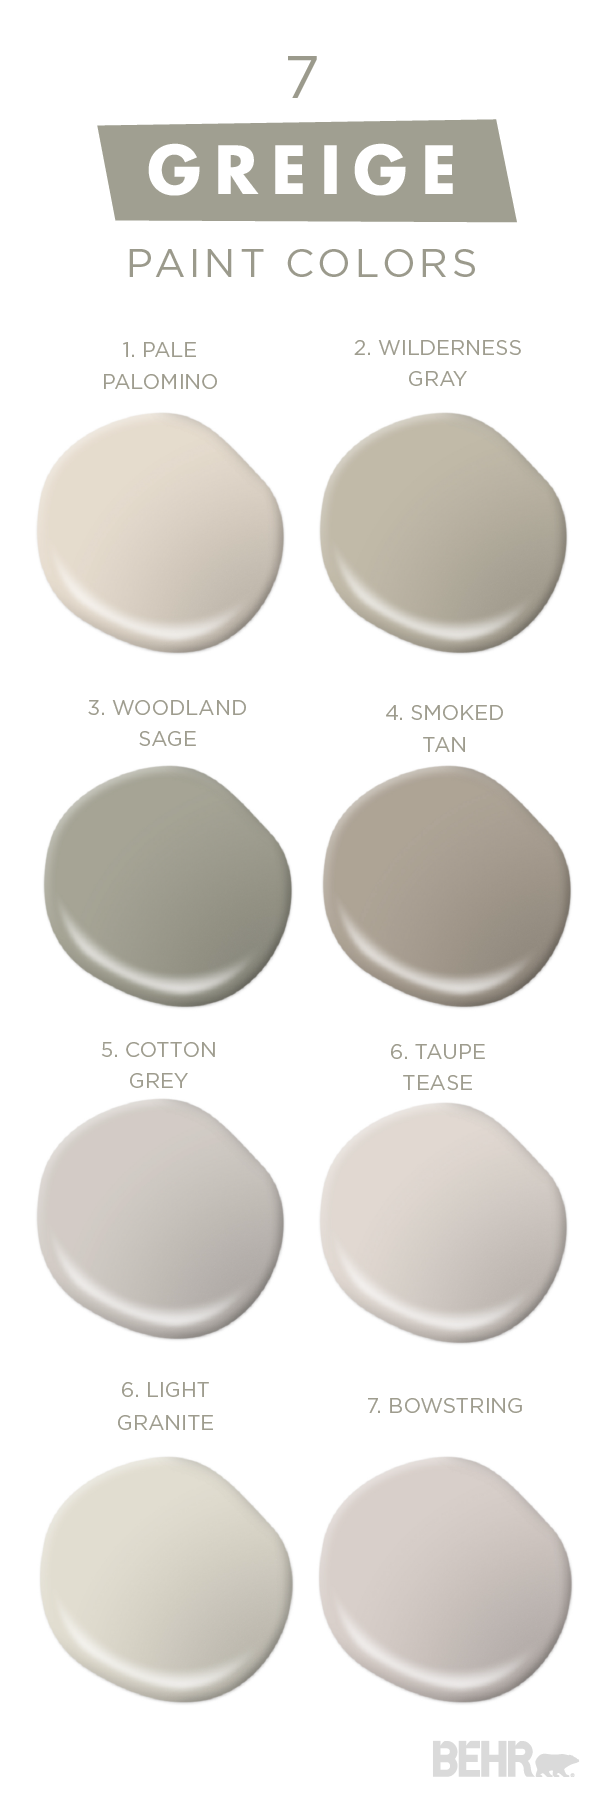 Attractive You Can Never Have Too Much Of A Good Thing With This Collection Of Classic  Neutral Paint Colors From BEHR. Embrace U201cGreige,u201d And Mixture Of Gray And  Beige, ...